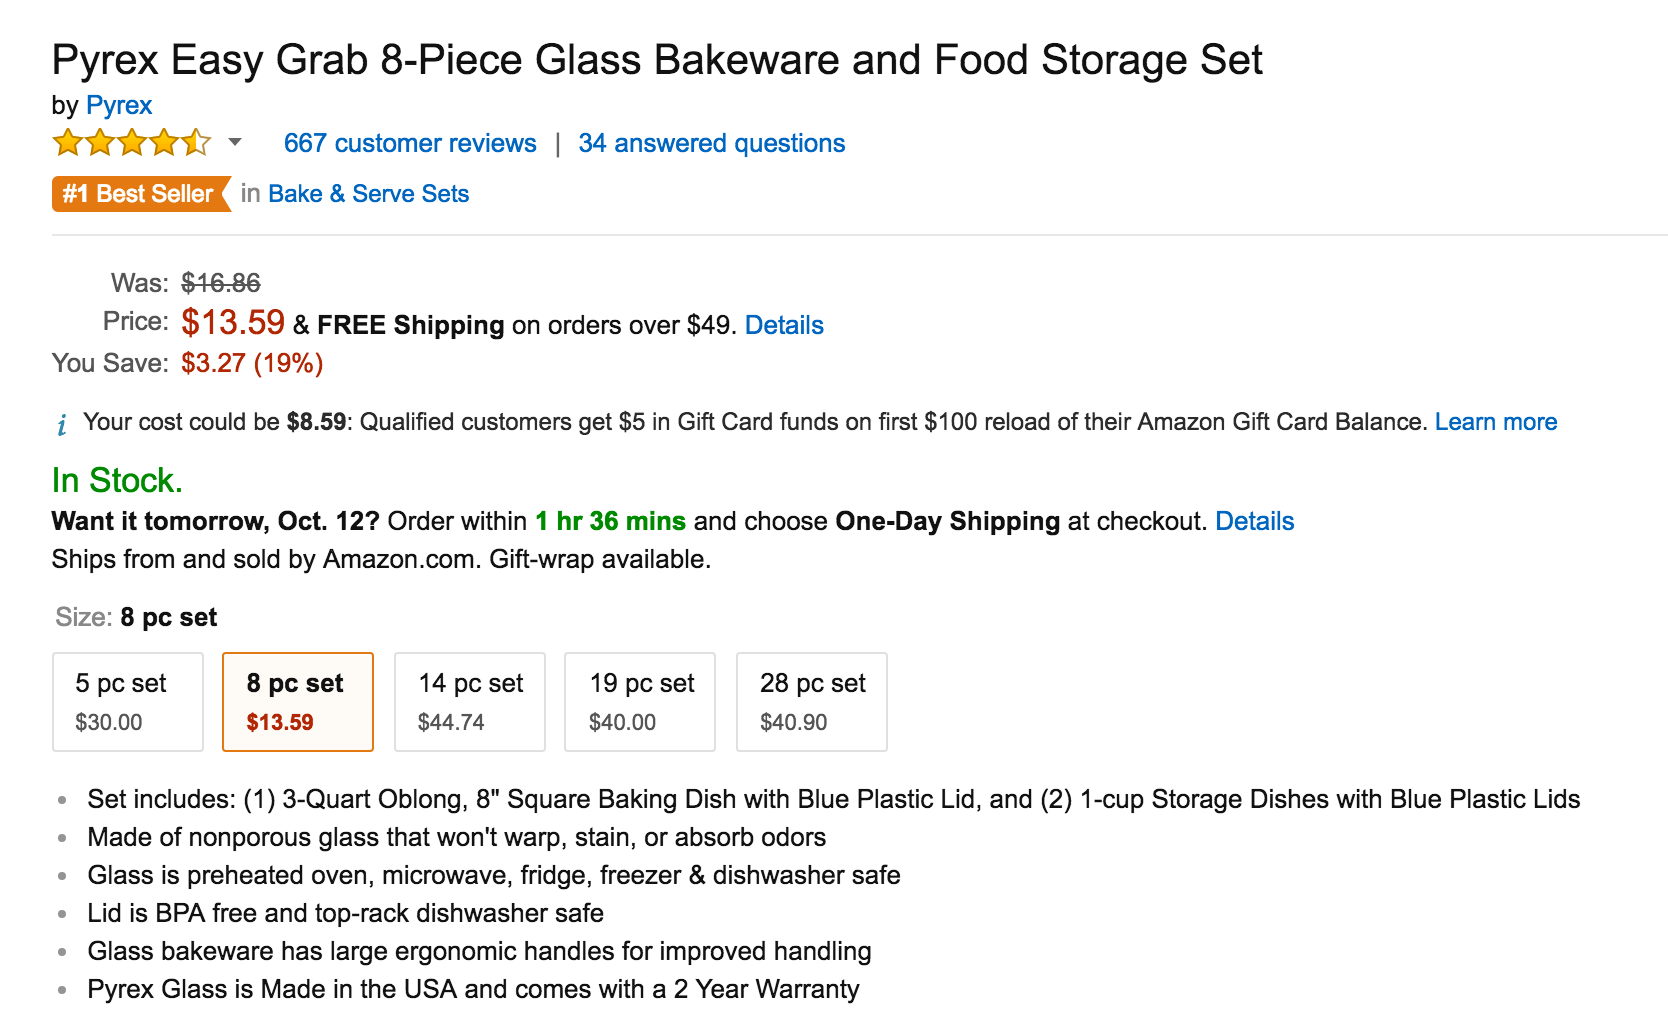 pyrex-easy-grab-8-piece-glass-bakeware-and-food-storage-set-2